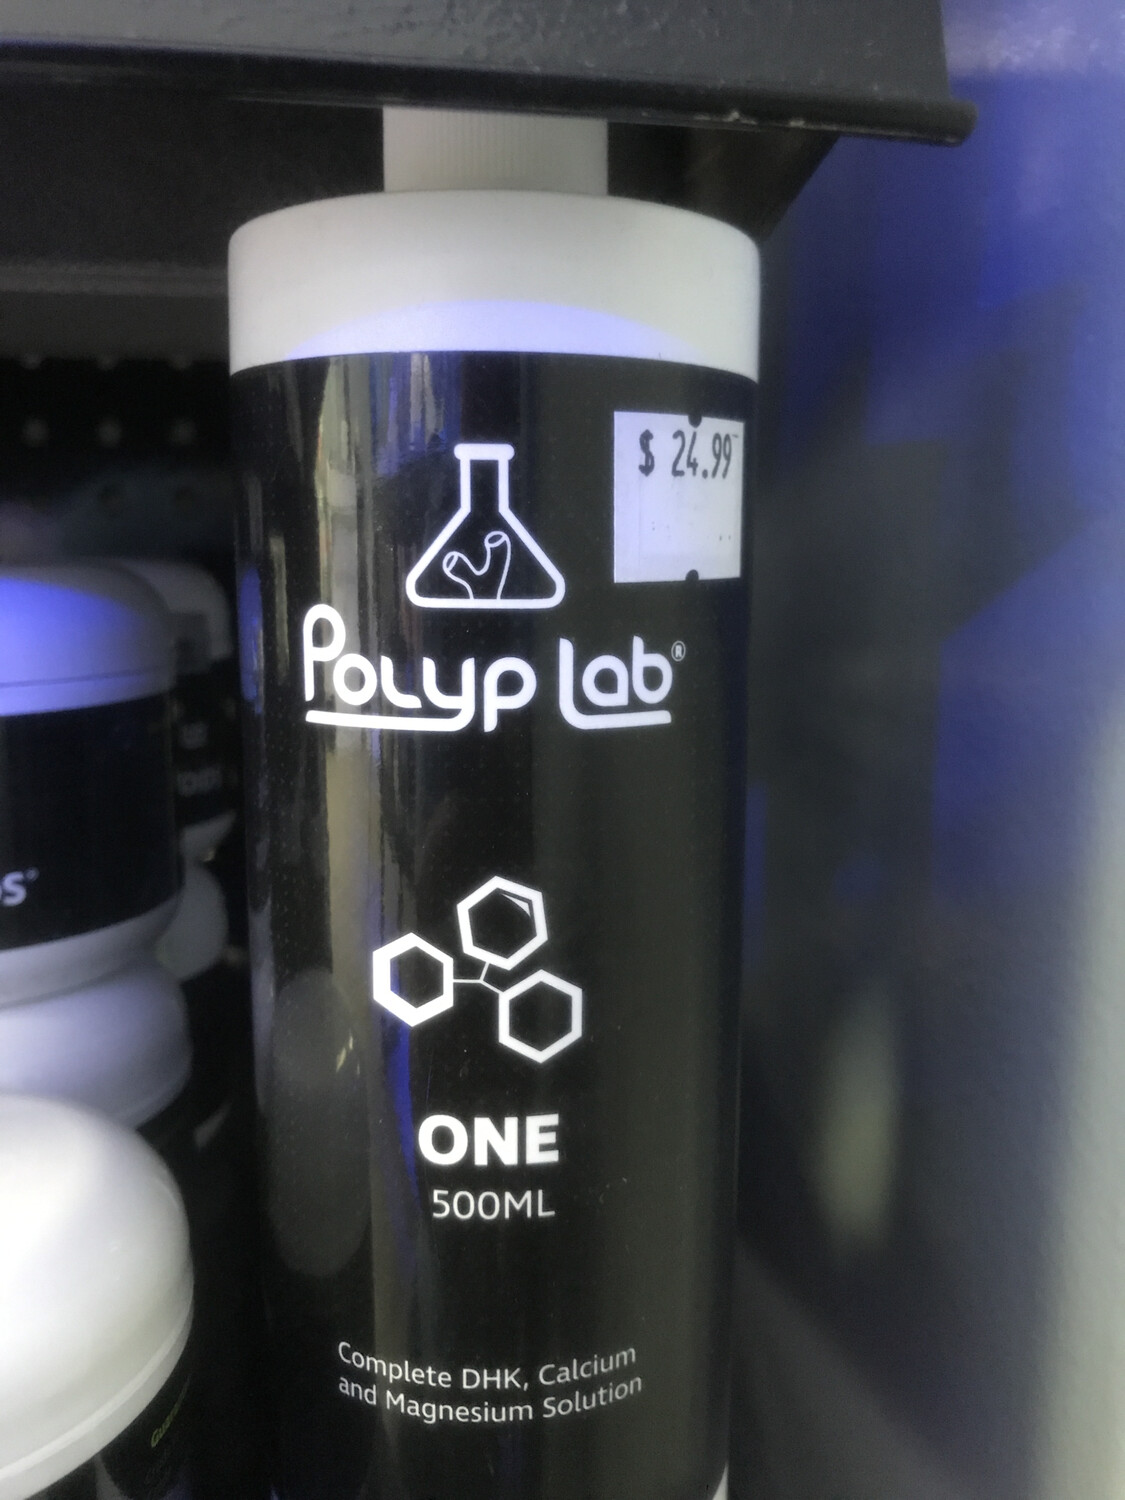 PolypLab ONE 500ml